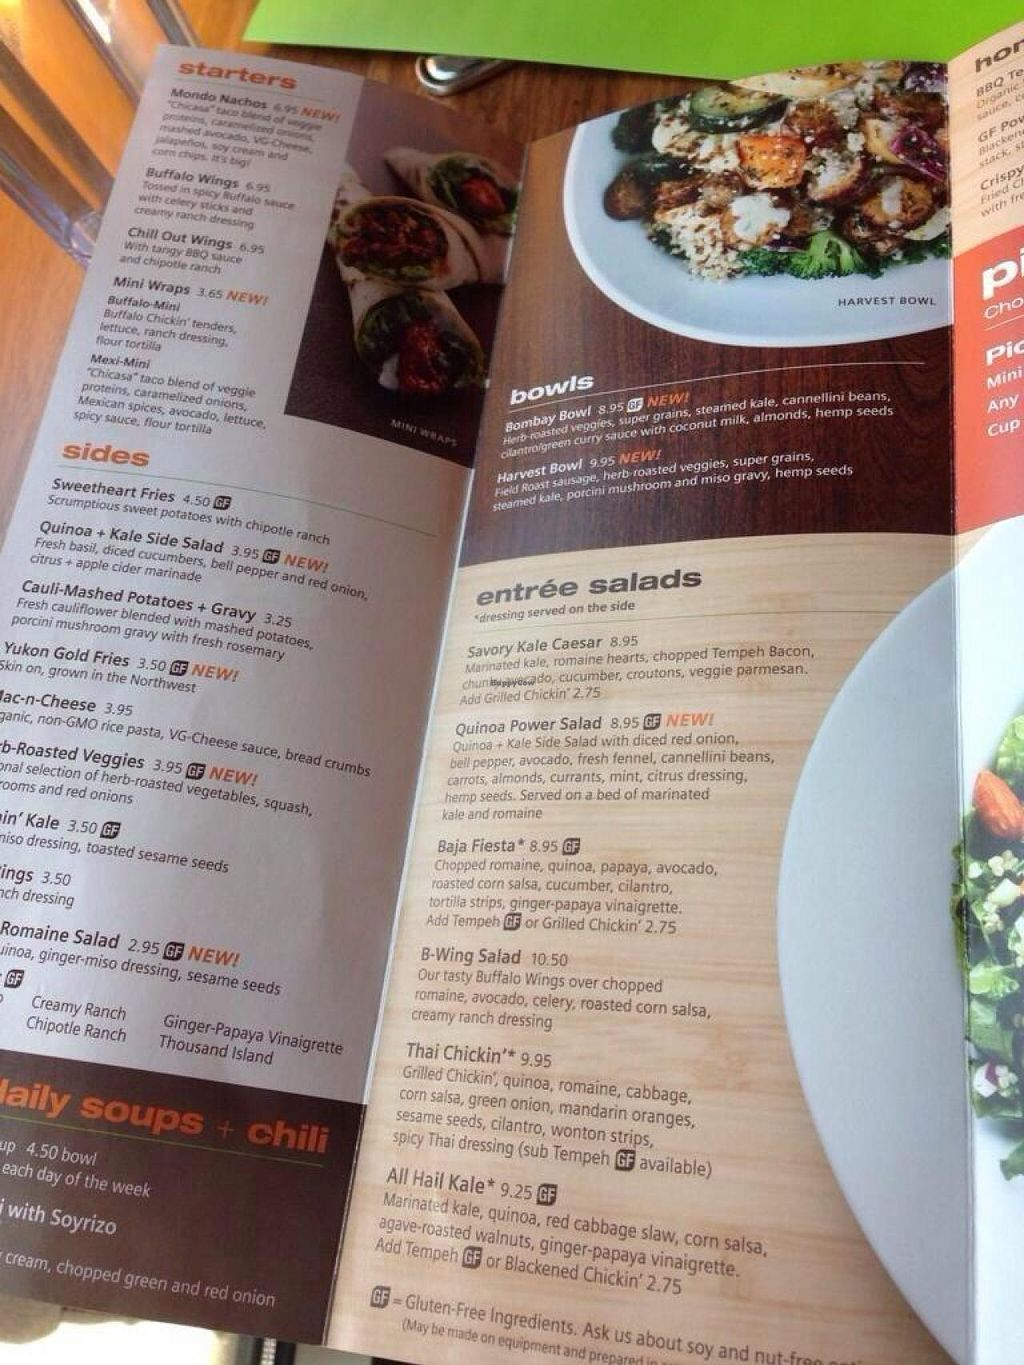 """Photo of Veggie Grill  by <a href=""""/members/profile/Carioquinha17"""">Carioquinha17</a> <br/>Their menu again <br/> May 11, 2014  - <a href='/contact/abuse/image/47261/69830'>Report</a>"""